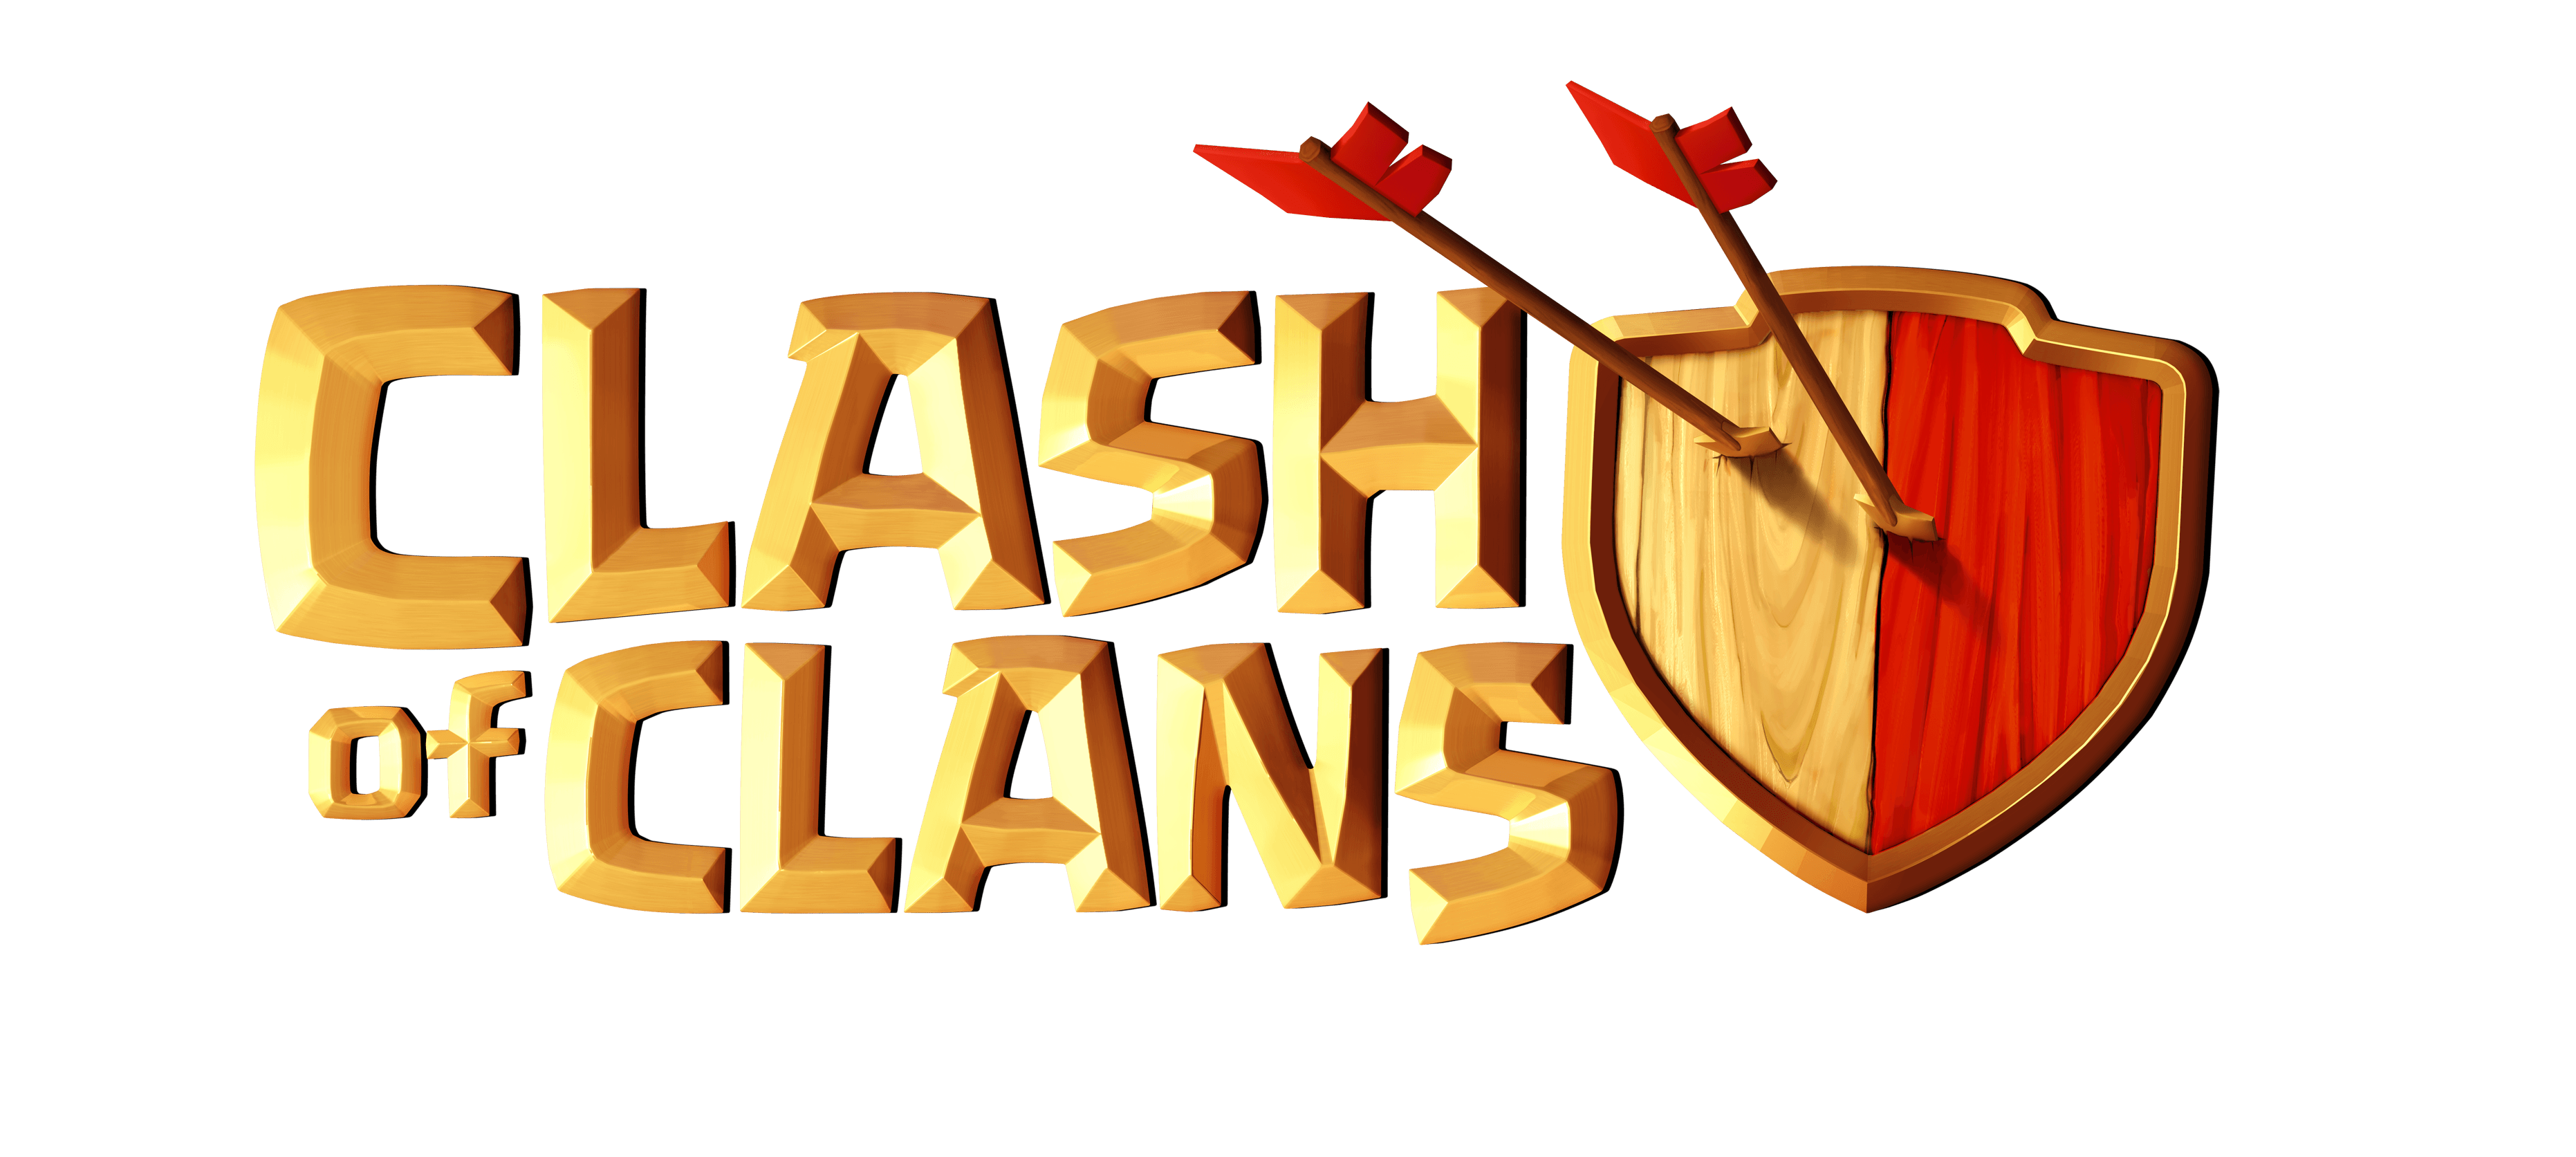 Youtube clipart clash clans. Of is a very